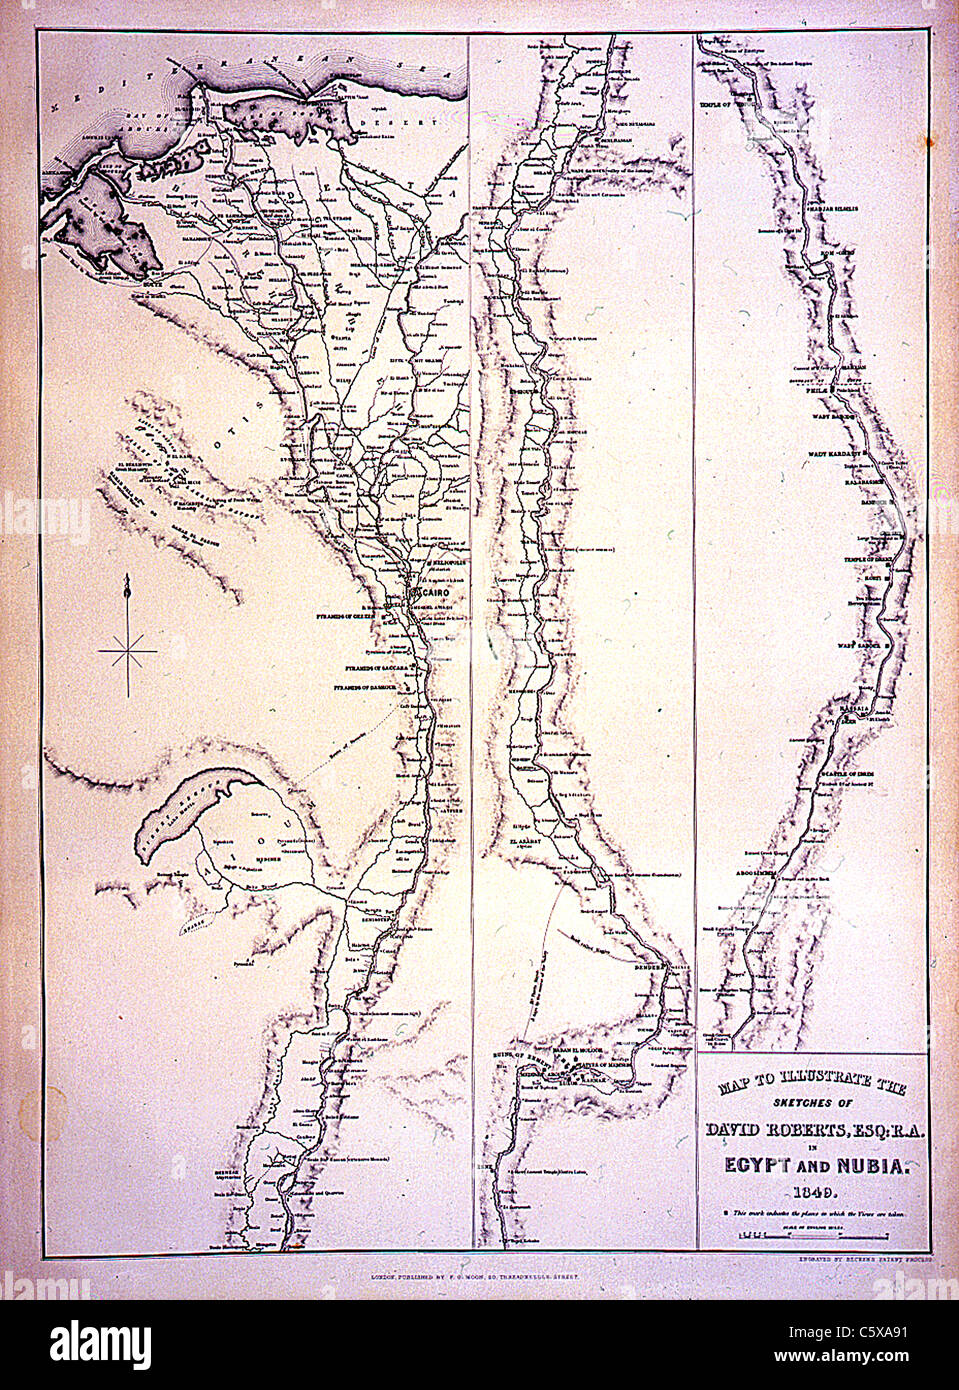 Map To Illustrate The Sketches Of Egypt And Nubia Obelisk - Map of egypt heliopolis